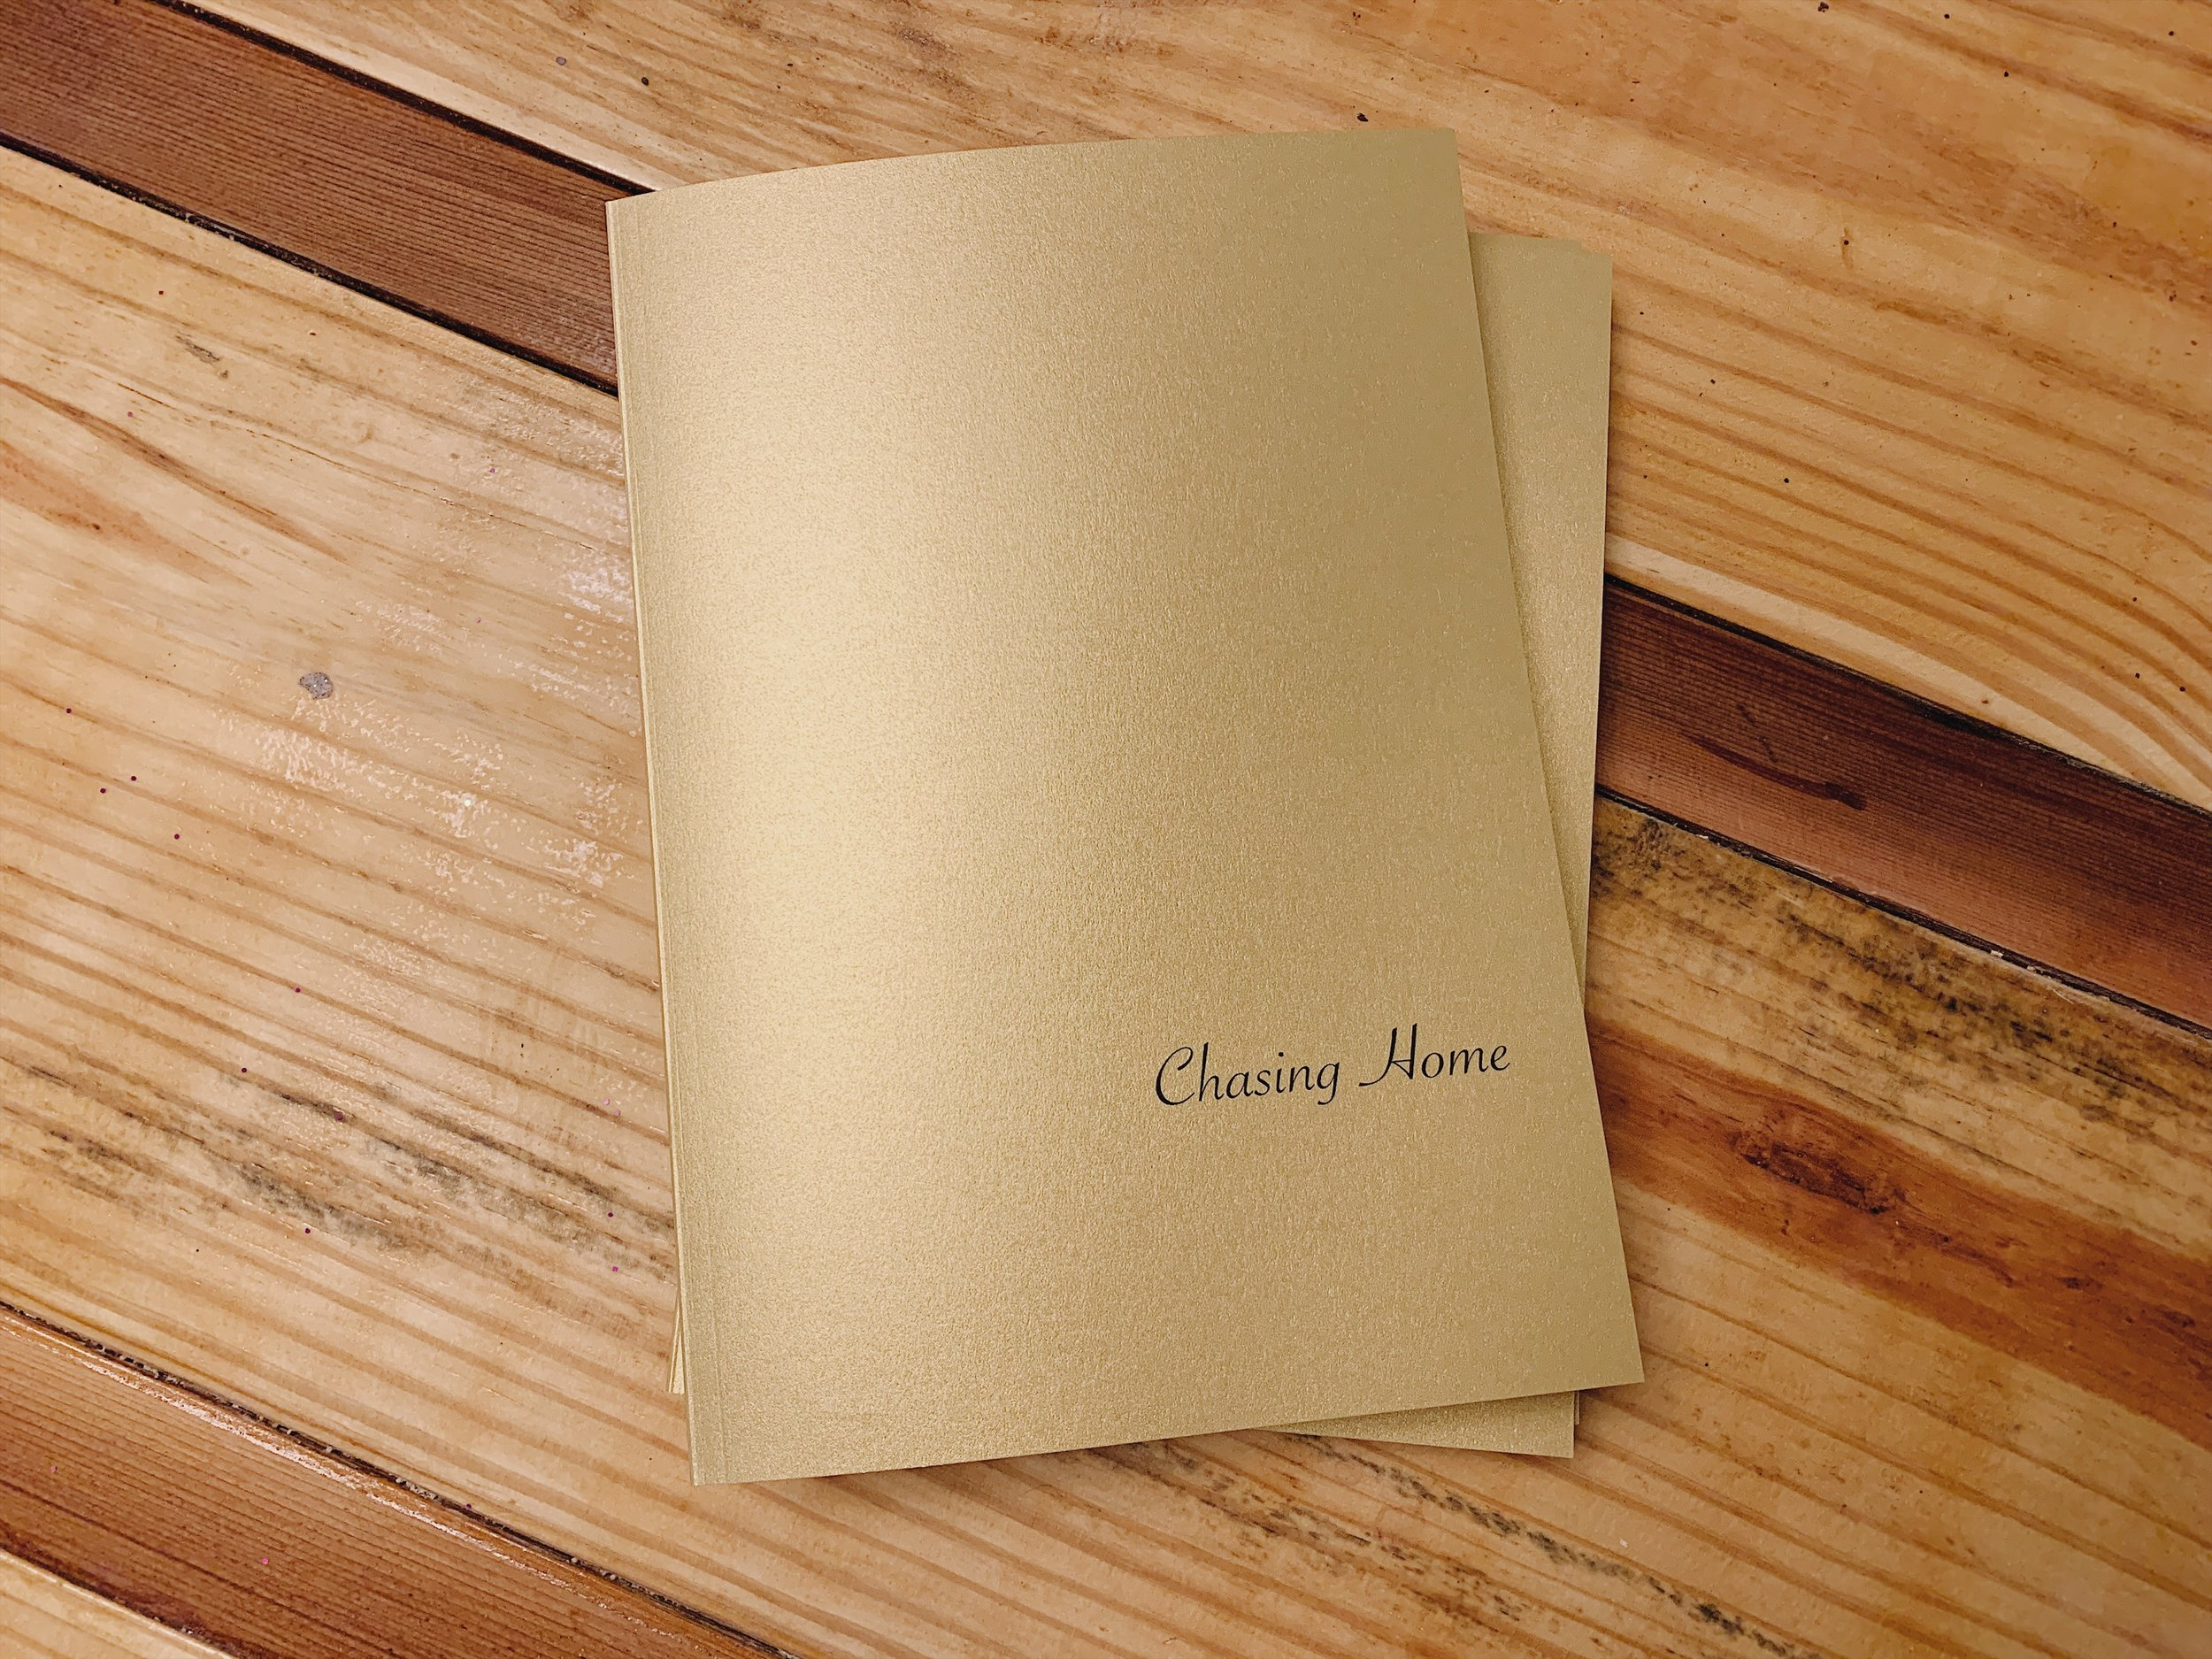 Chasing Home Book, 7x10 Softcover, 48 pg.